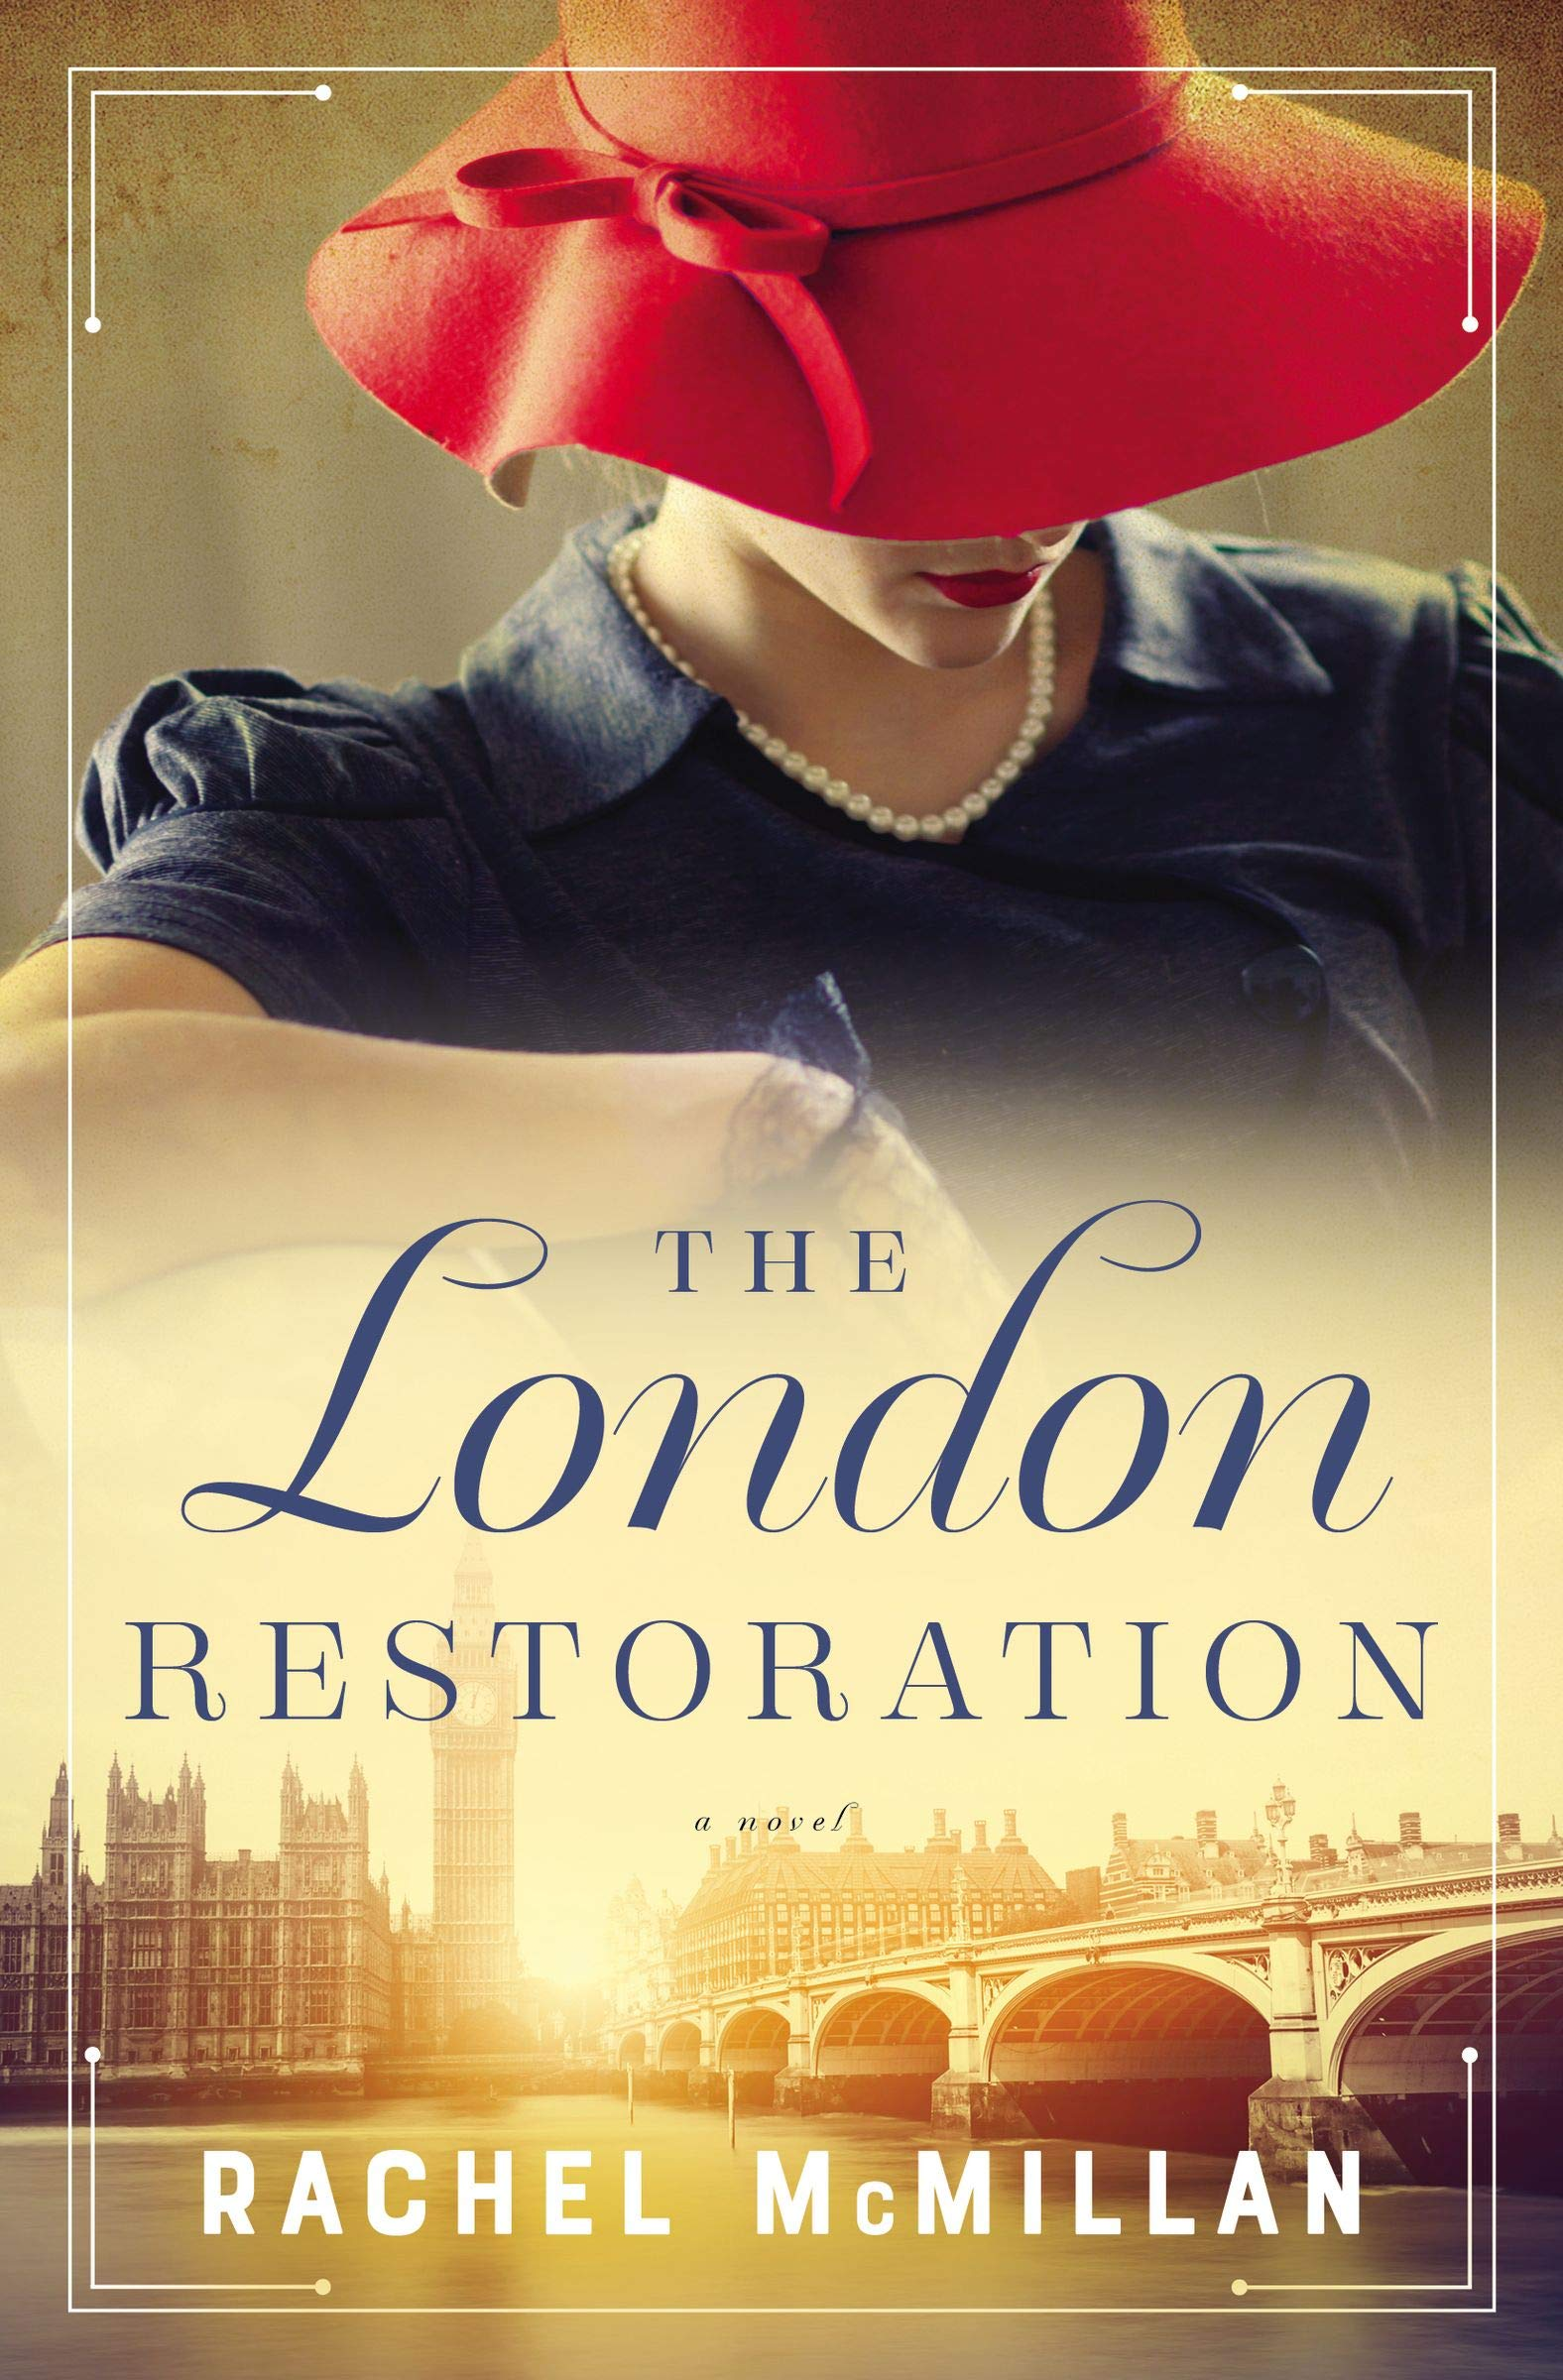 The London Restoration by Rachel McMillian 2020